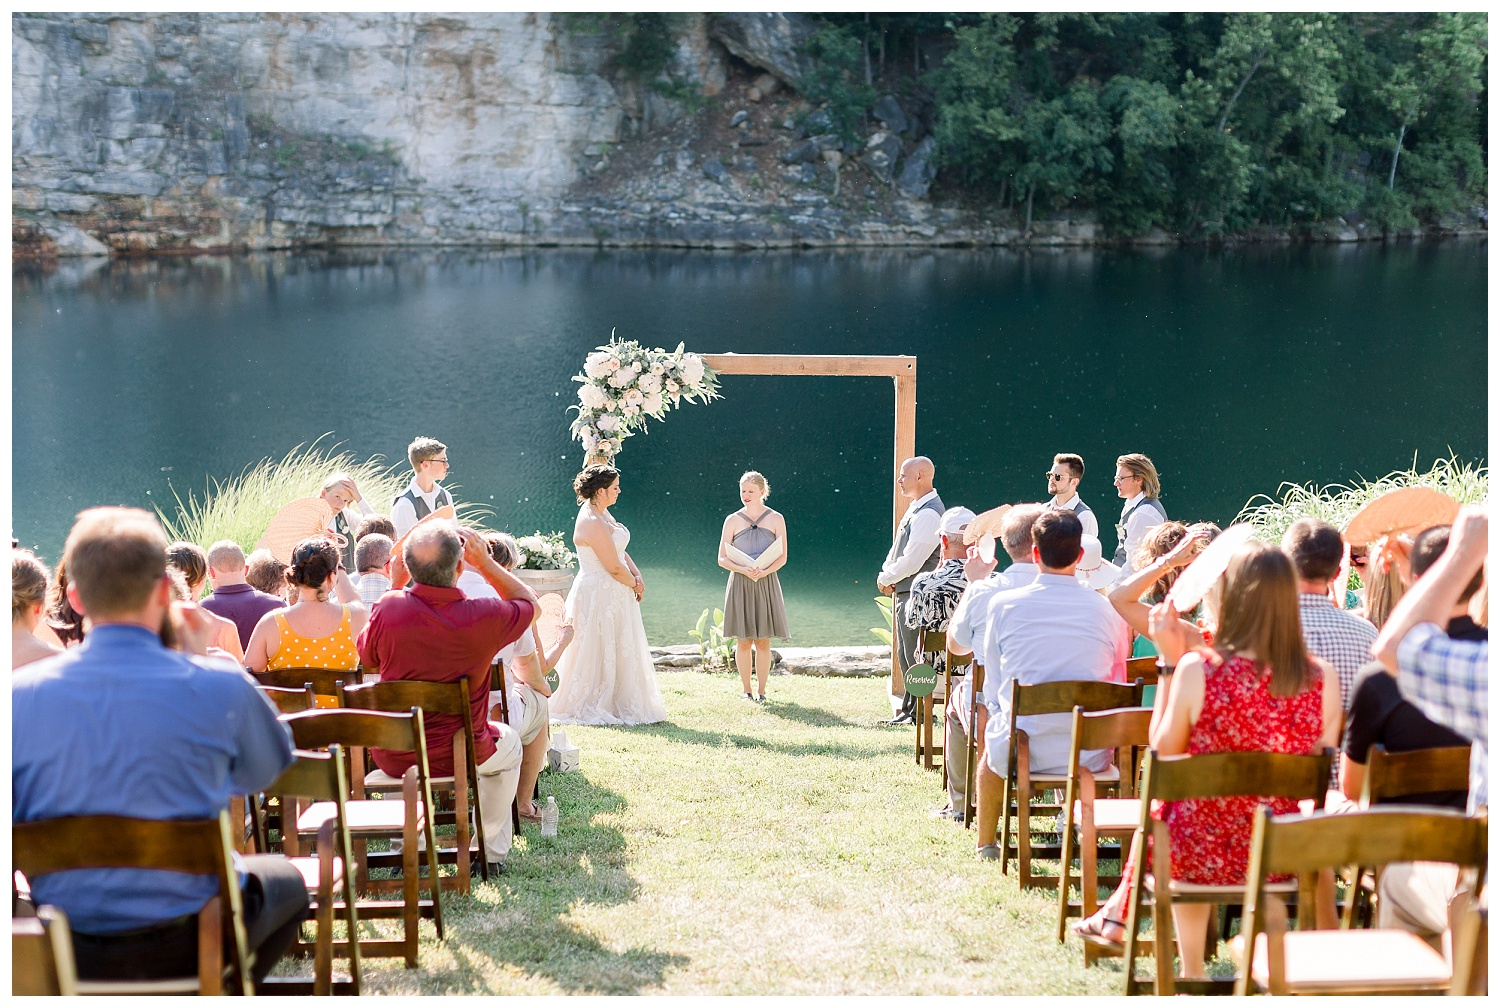 Wildcliff weddings and events